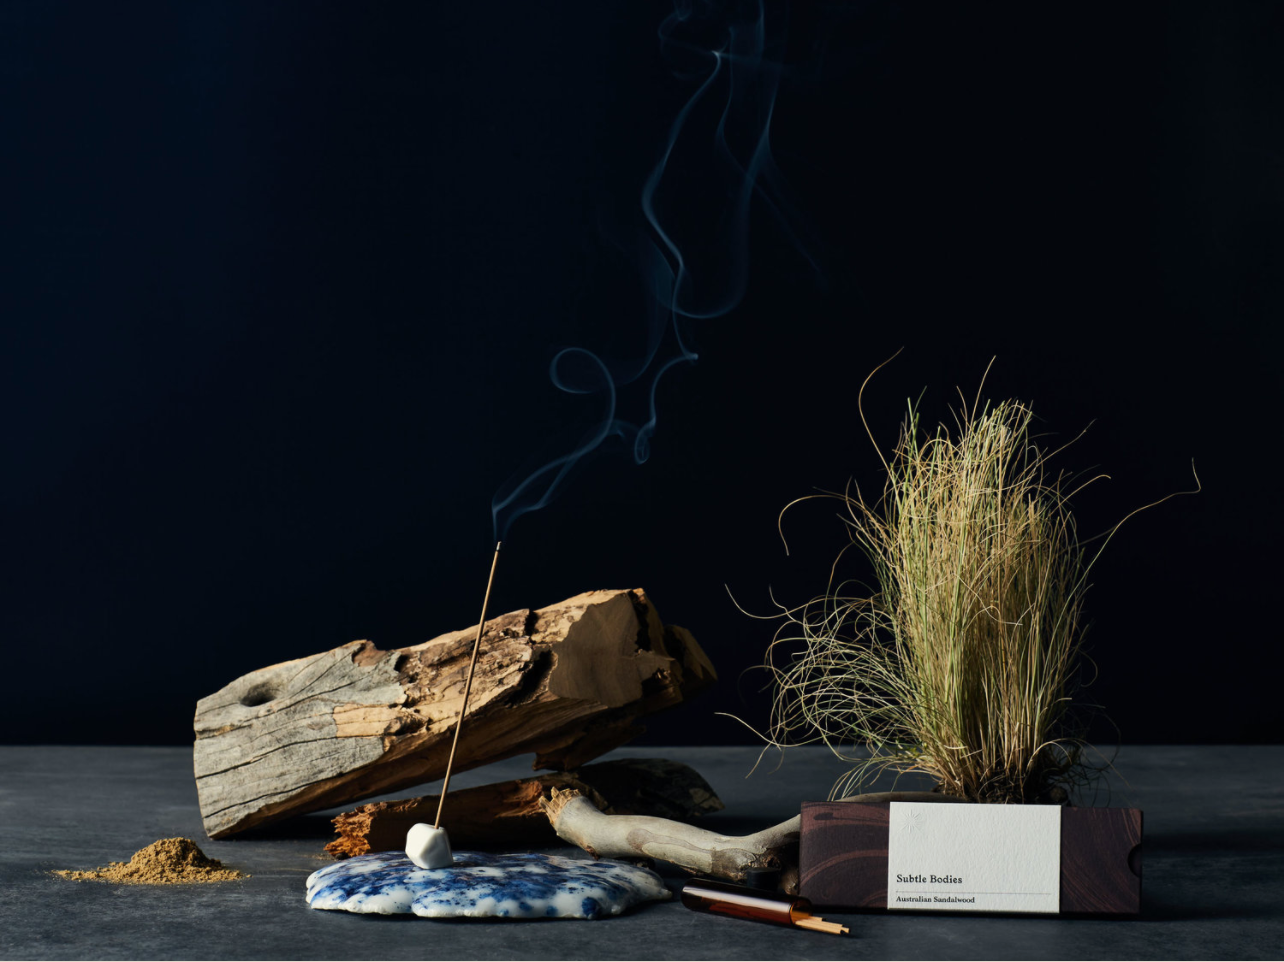 Incense: Australian Sandalwood